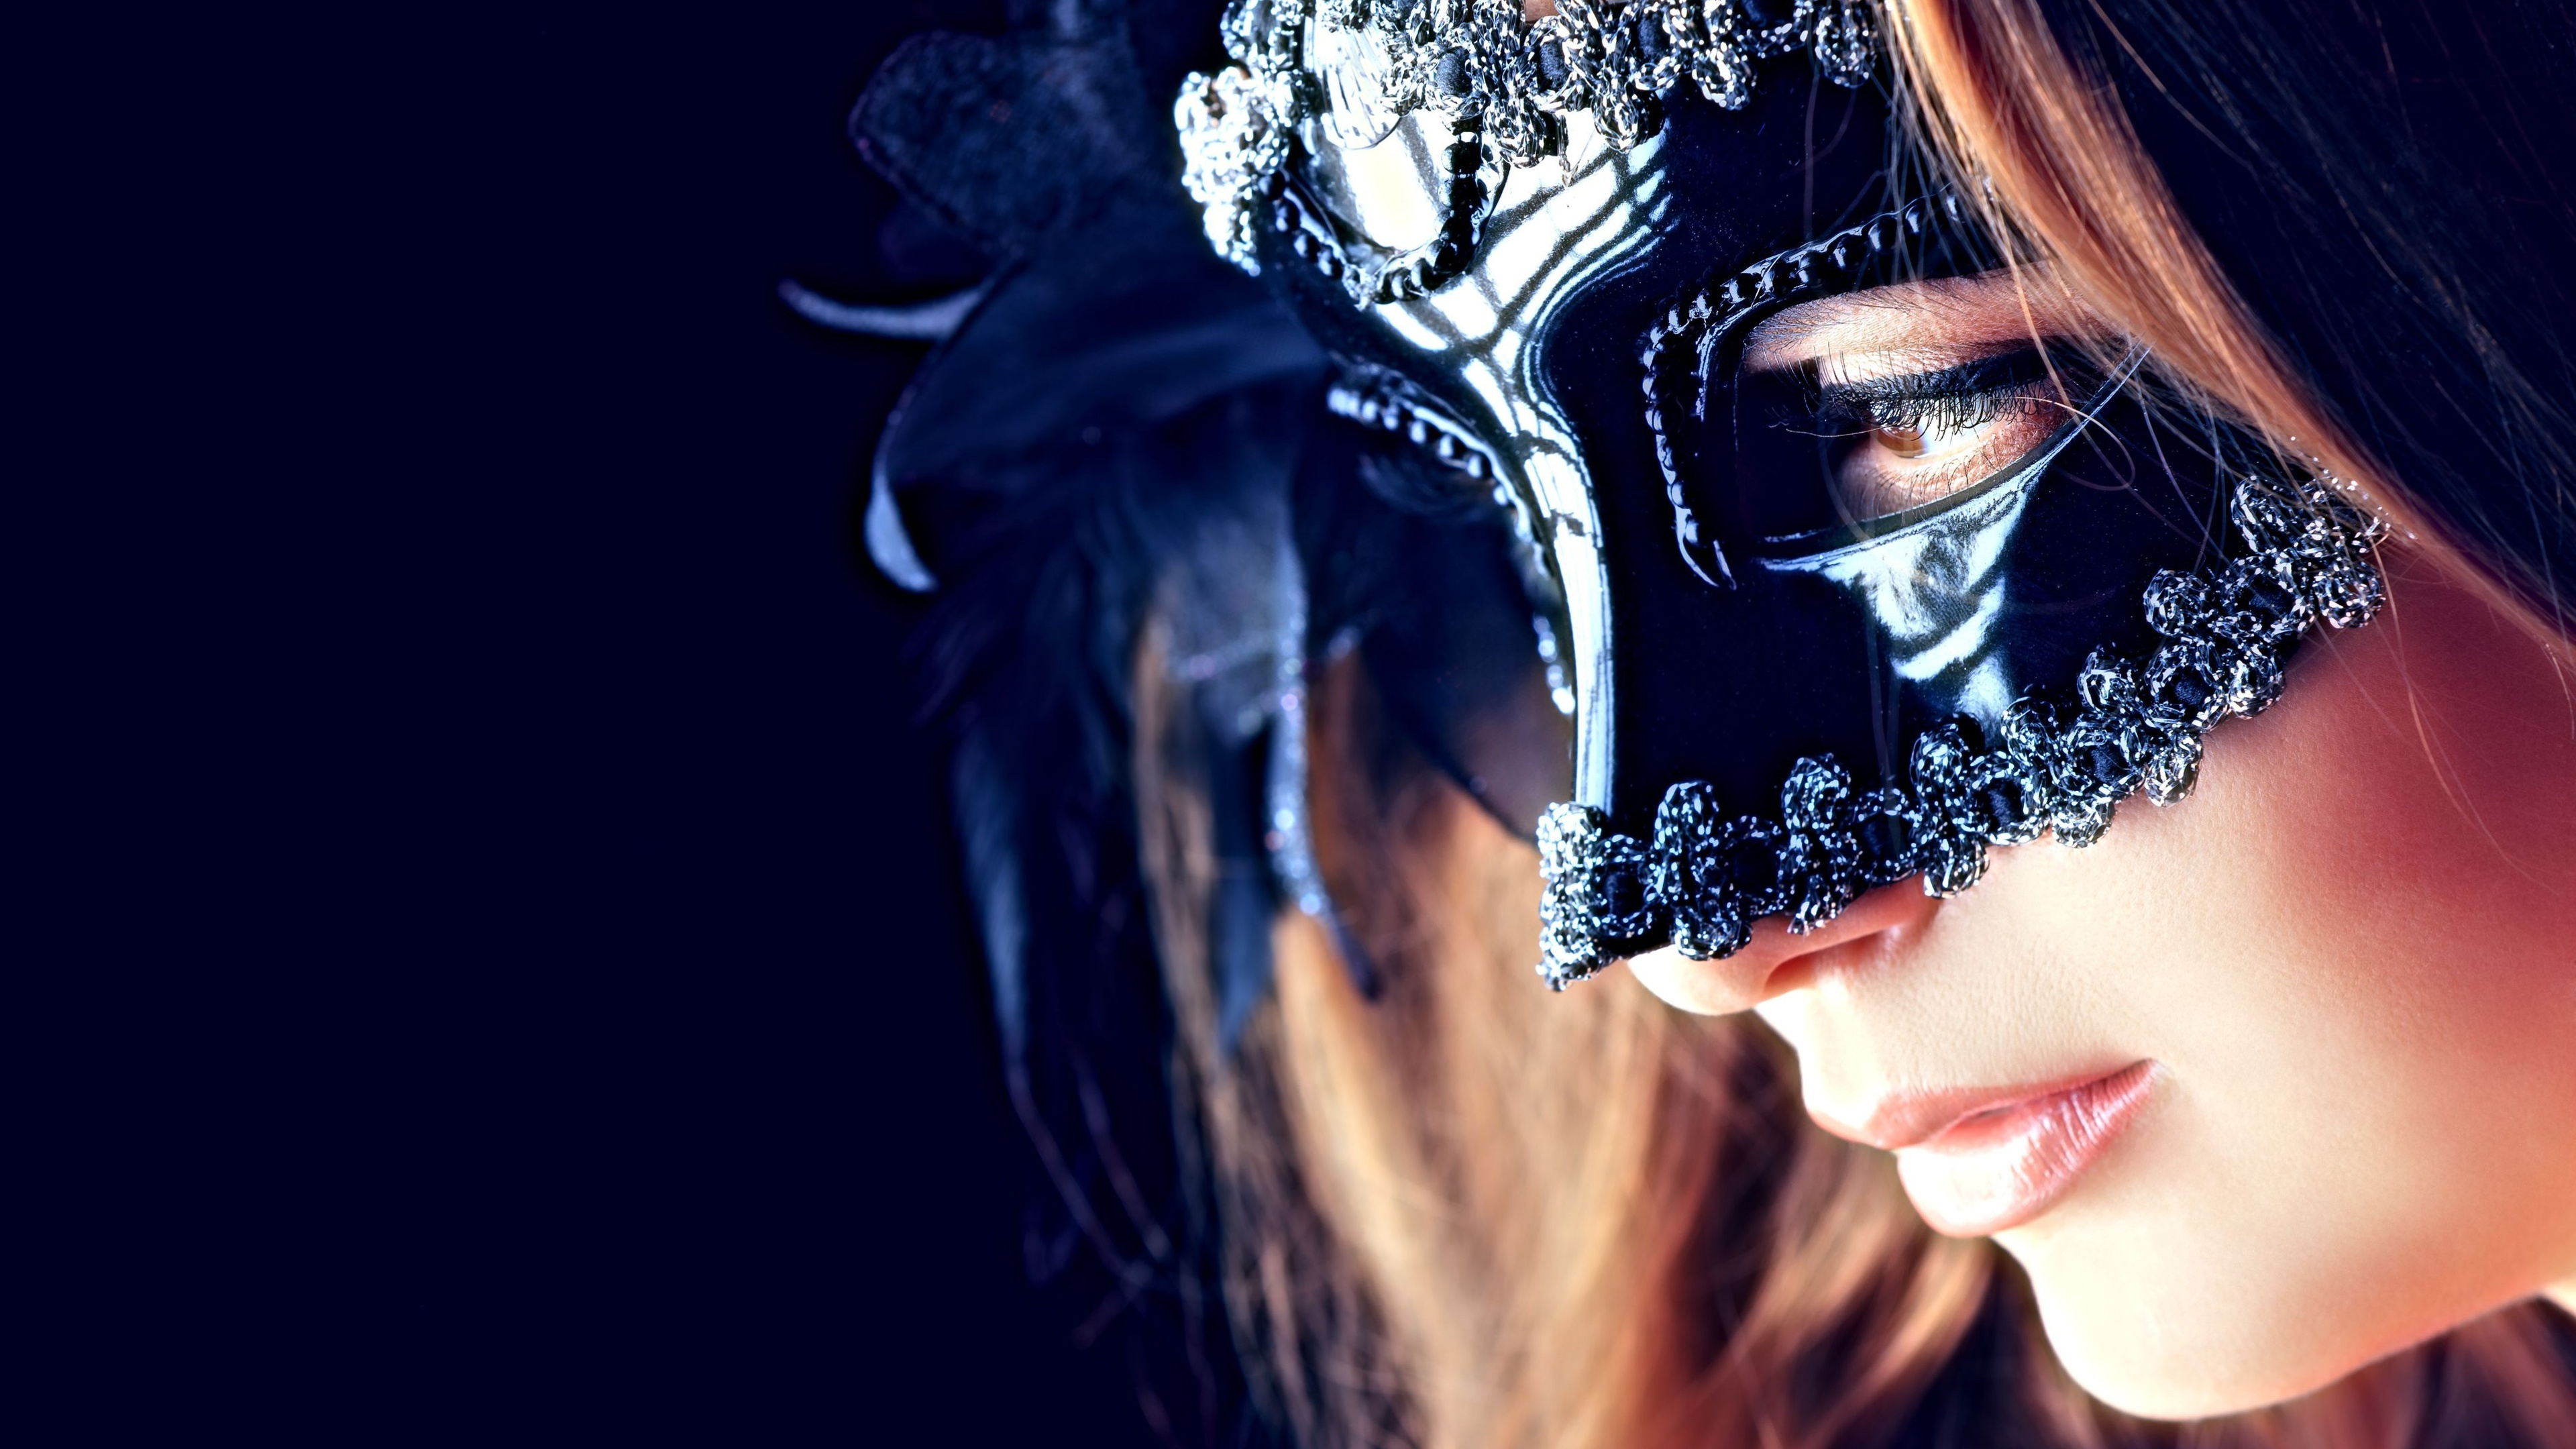 pictures of masquerade masks new masquerade mask high defination wallpapers all hd 3422